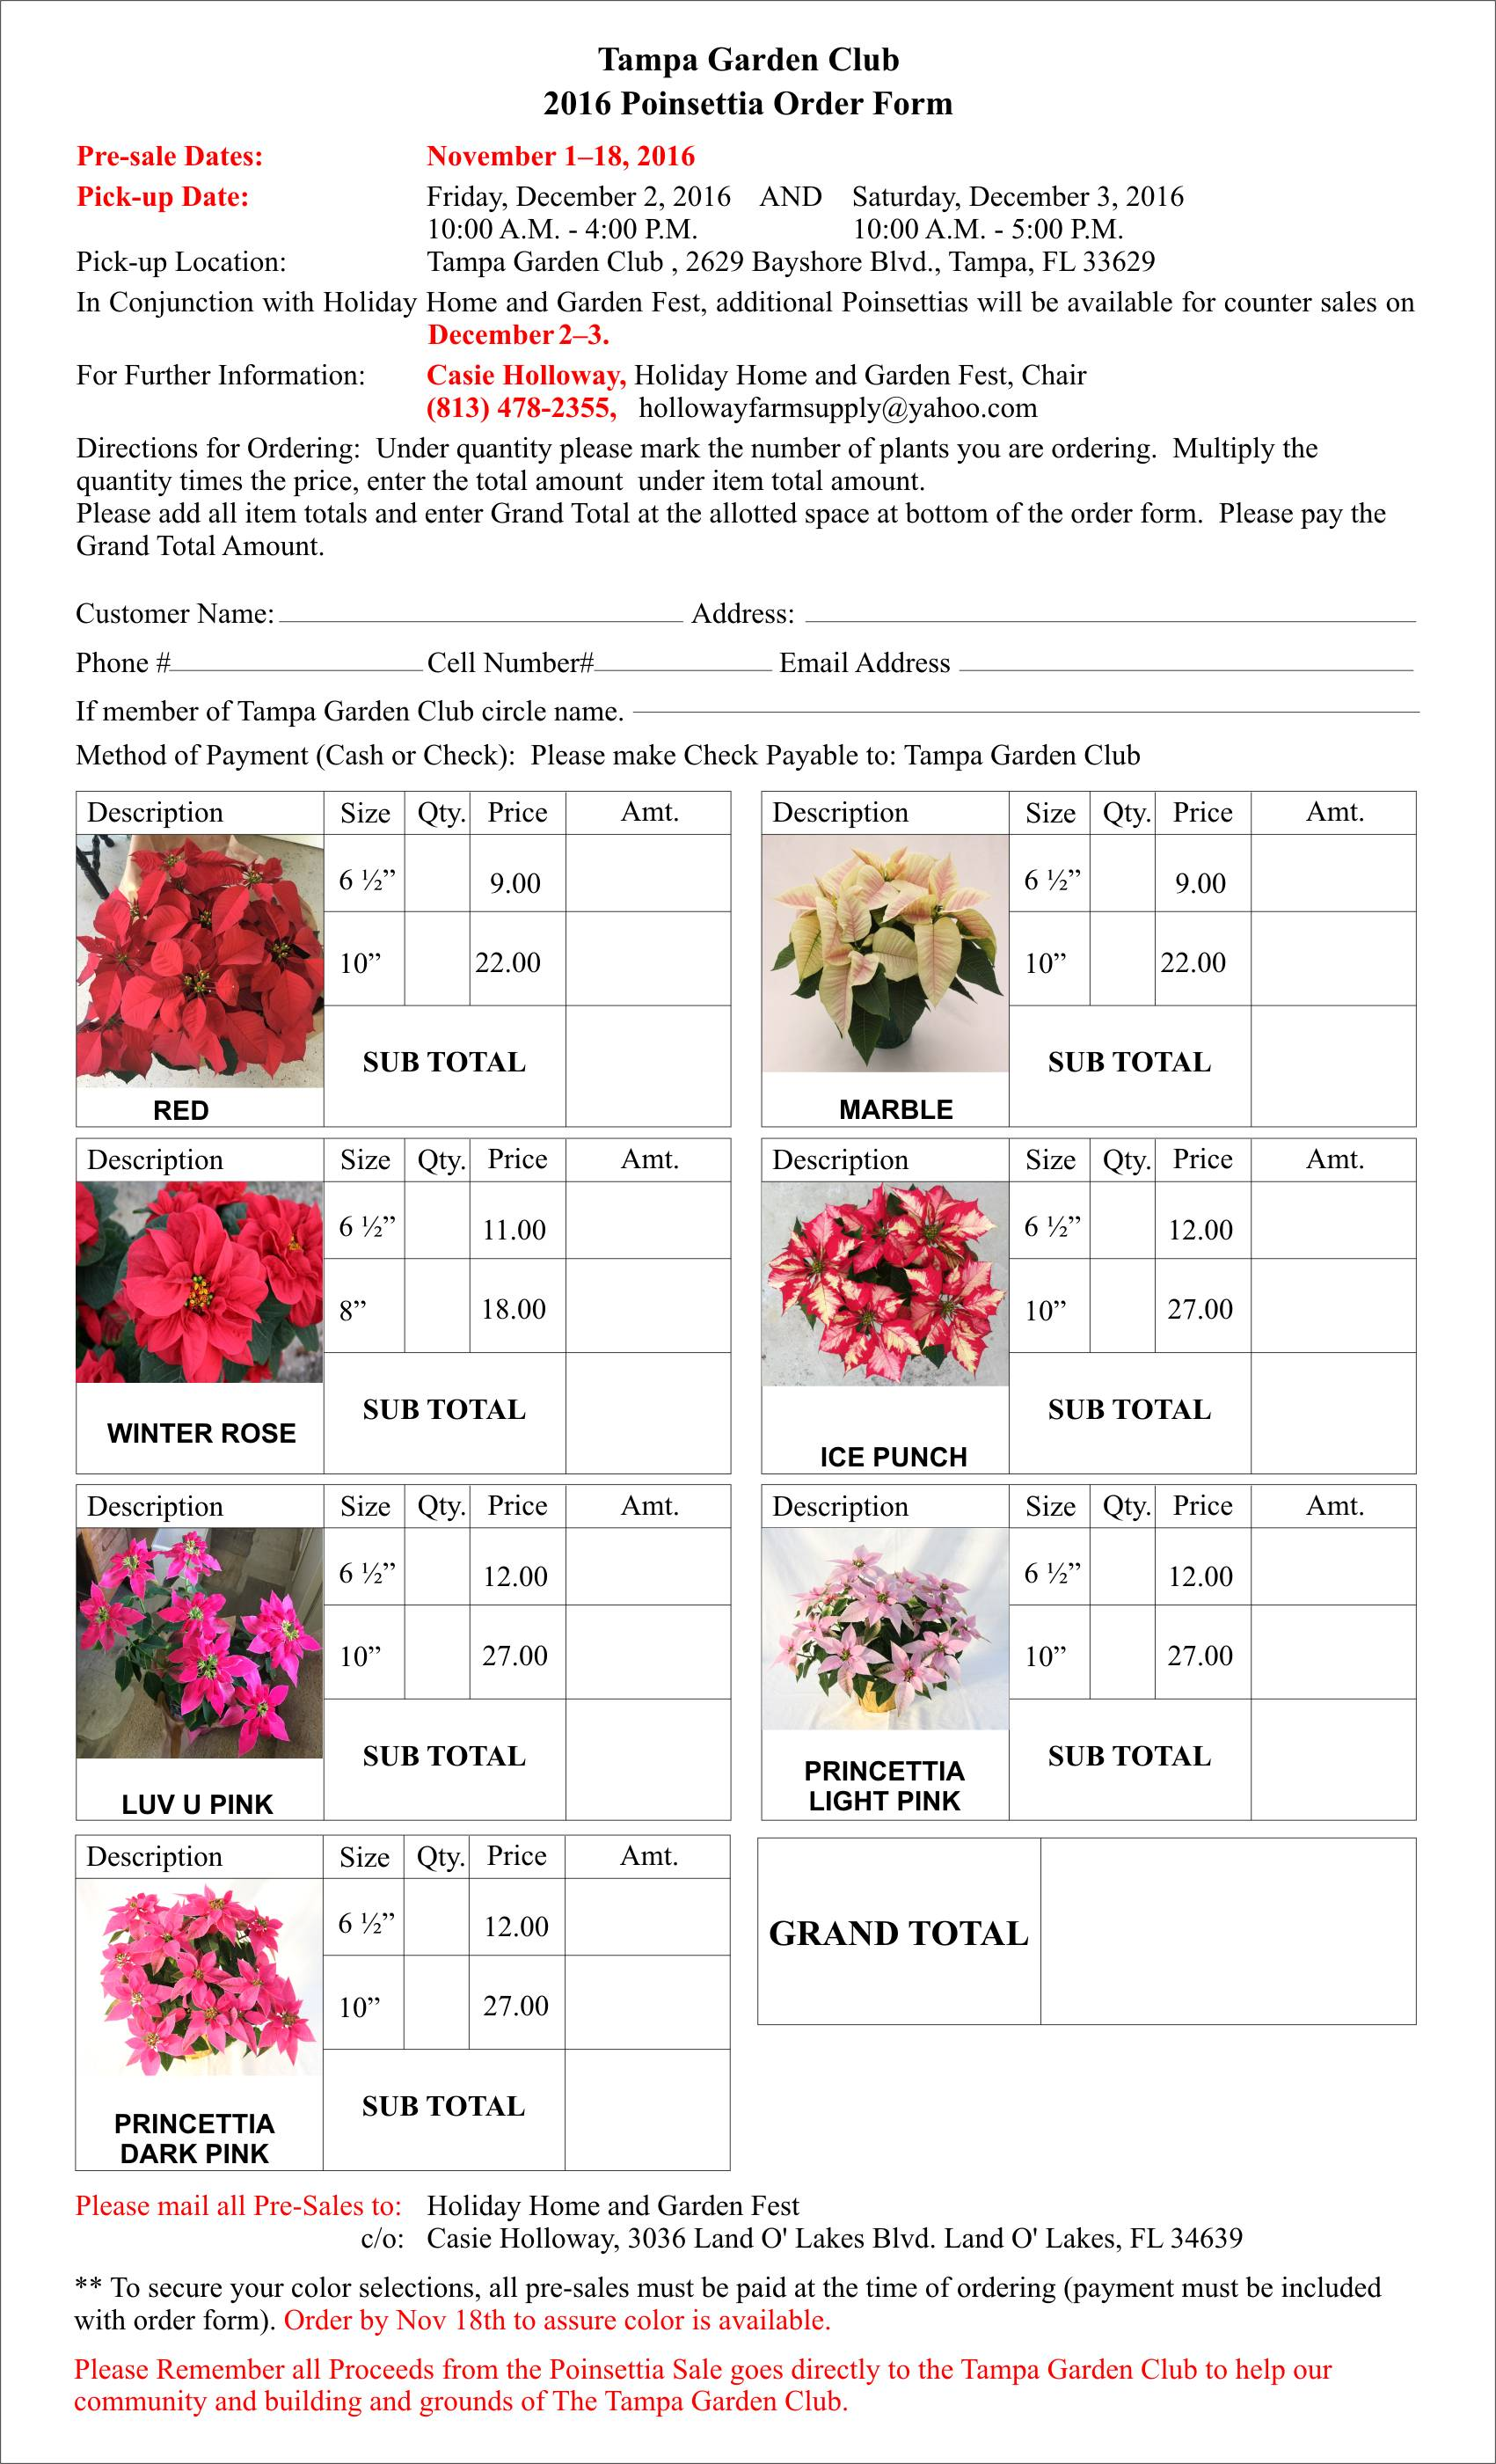 Click the image to download the order form.